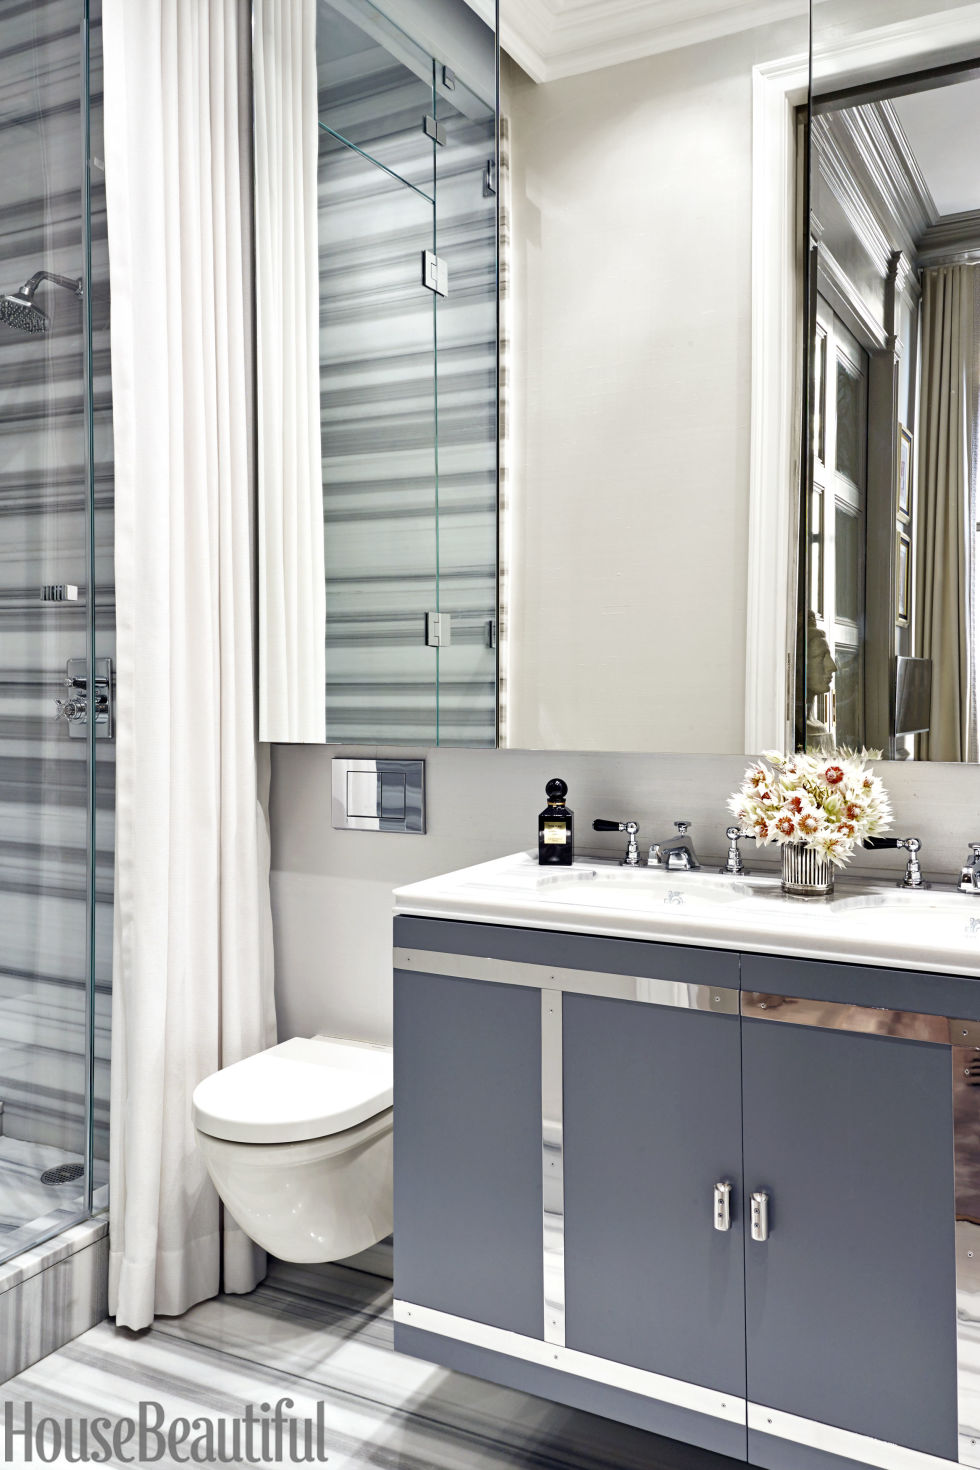 135+ best bathroom design ideas - decor pictures of stylish modern